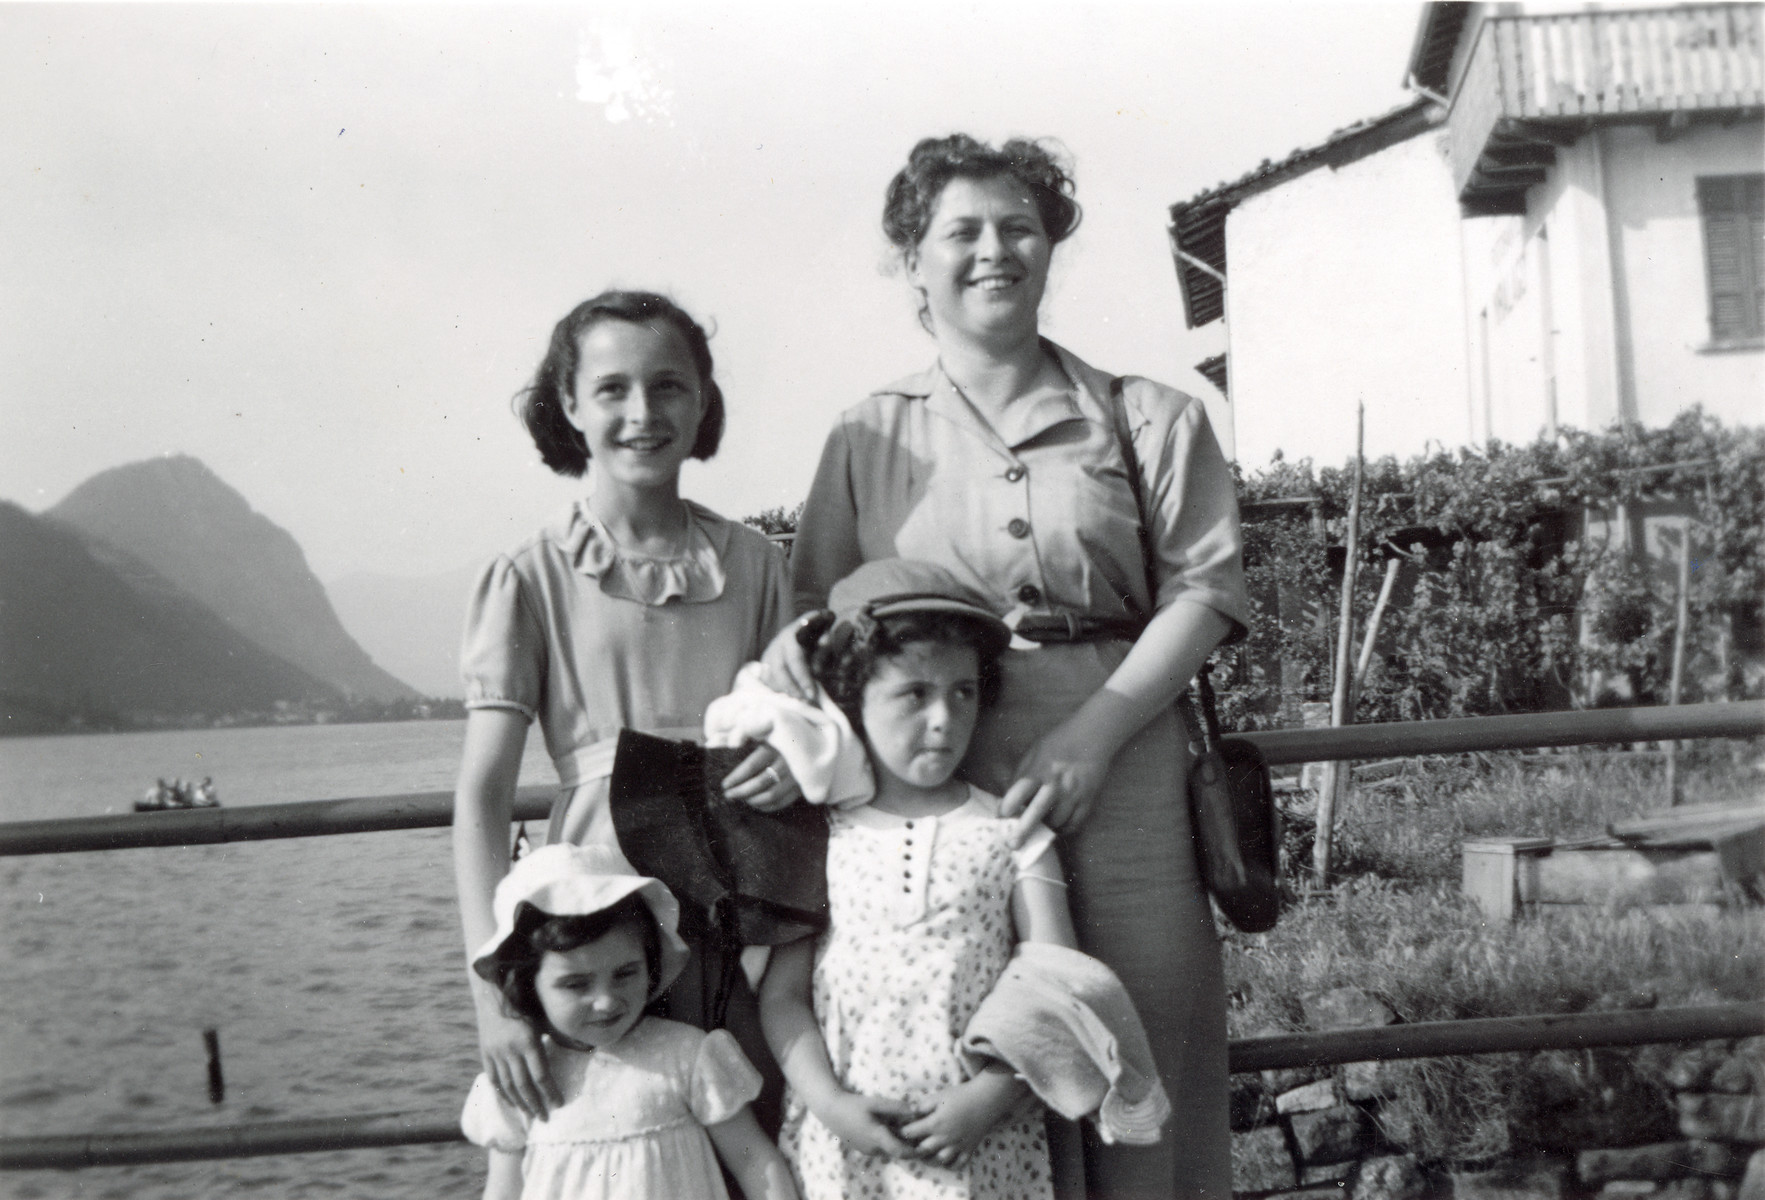 Toni Ermann poses on the shore of Lake Lugano with her three daughters.  Mirjam is standing top left next to her mother.  Henrietta pictured bottom left and Suzanne bottom right.